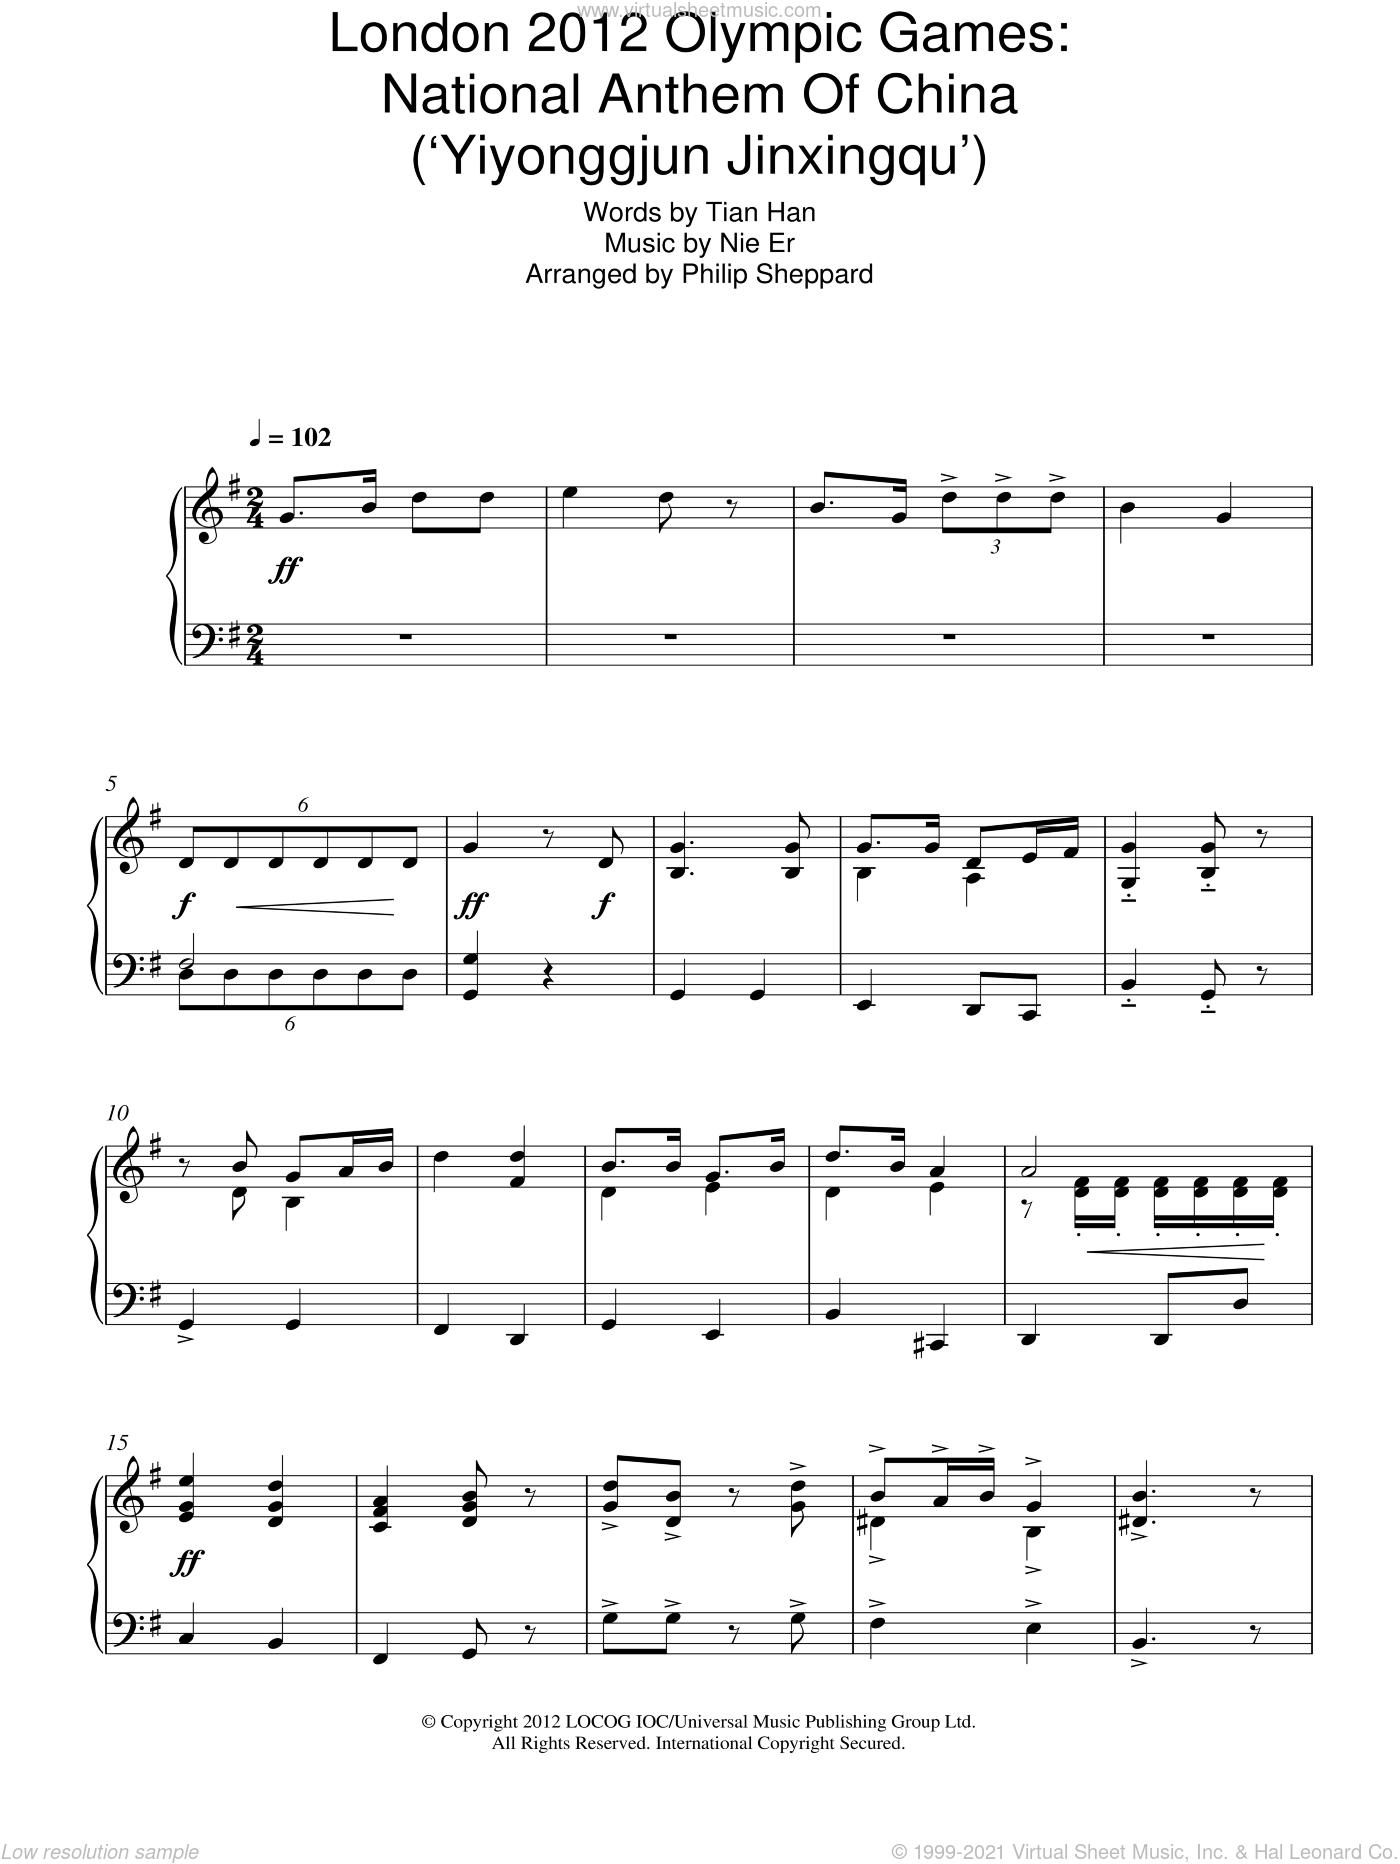 London 2012 Olympic Games: National Anthem Of China ('Yiyonggjun Jinxingqu') sheet music for piano solo by Tian Han